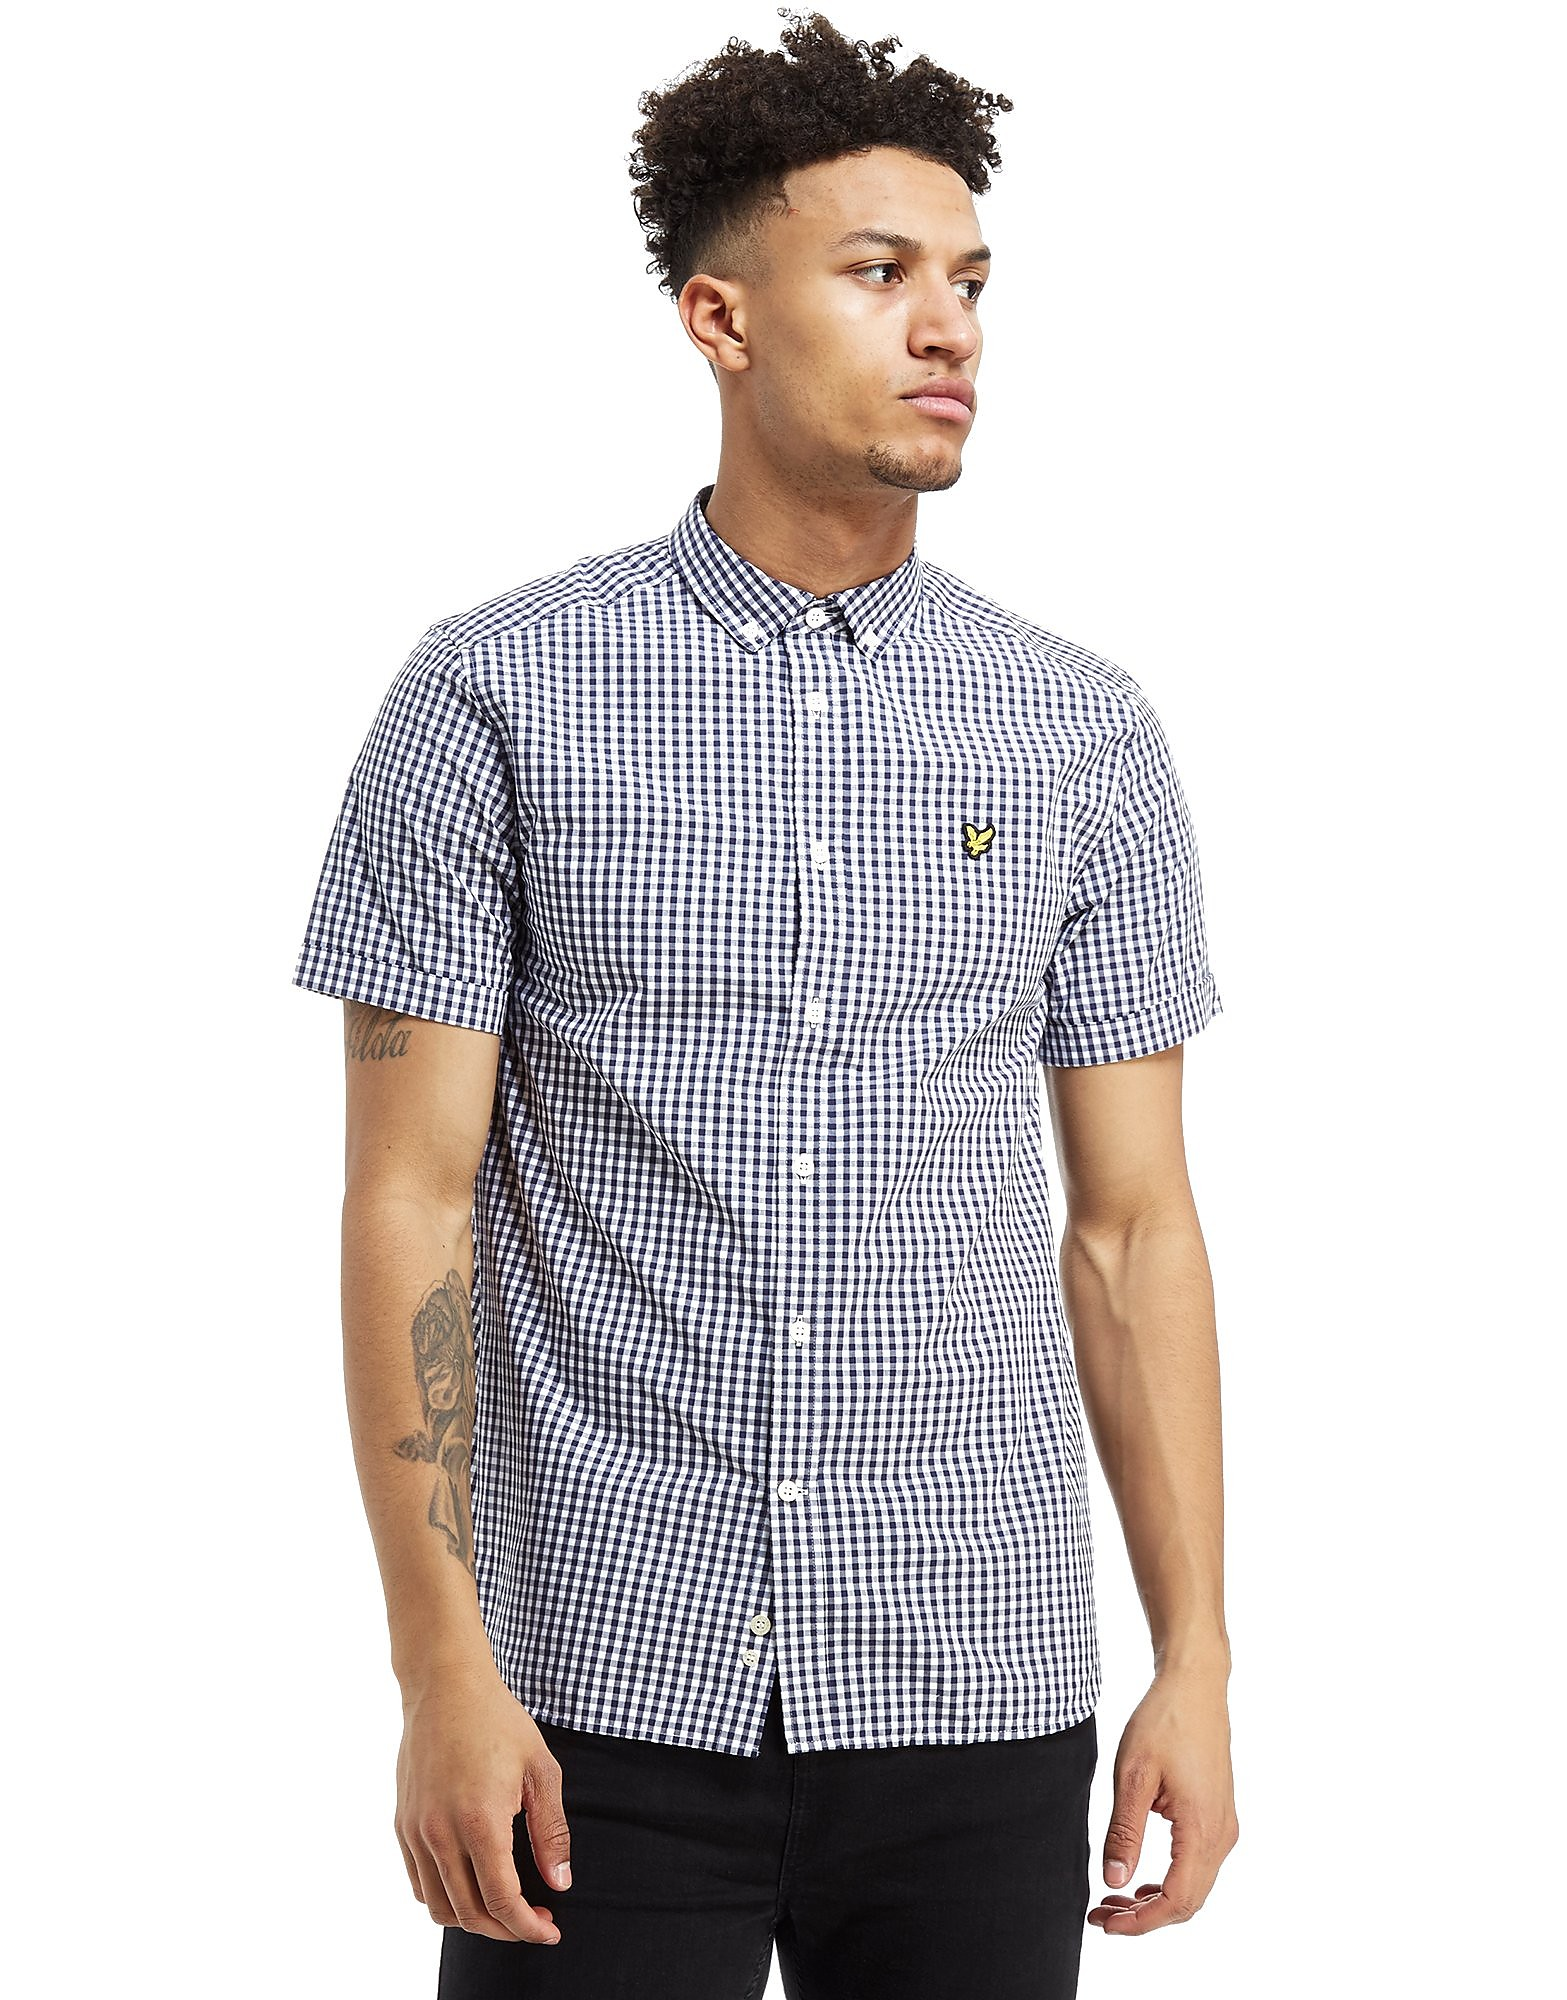 Lyle & Scott Short Sleeve Gingham Check Shirt